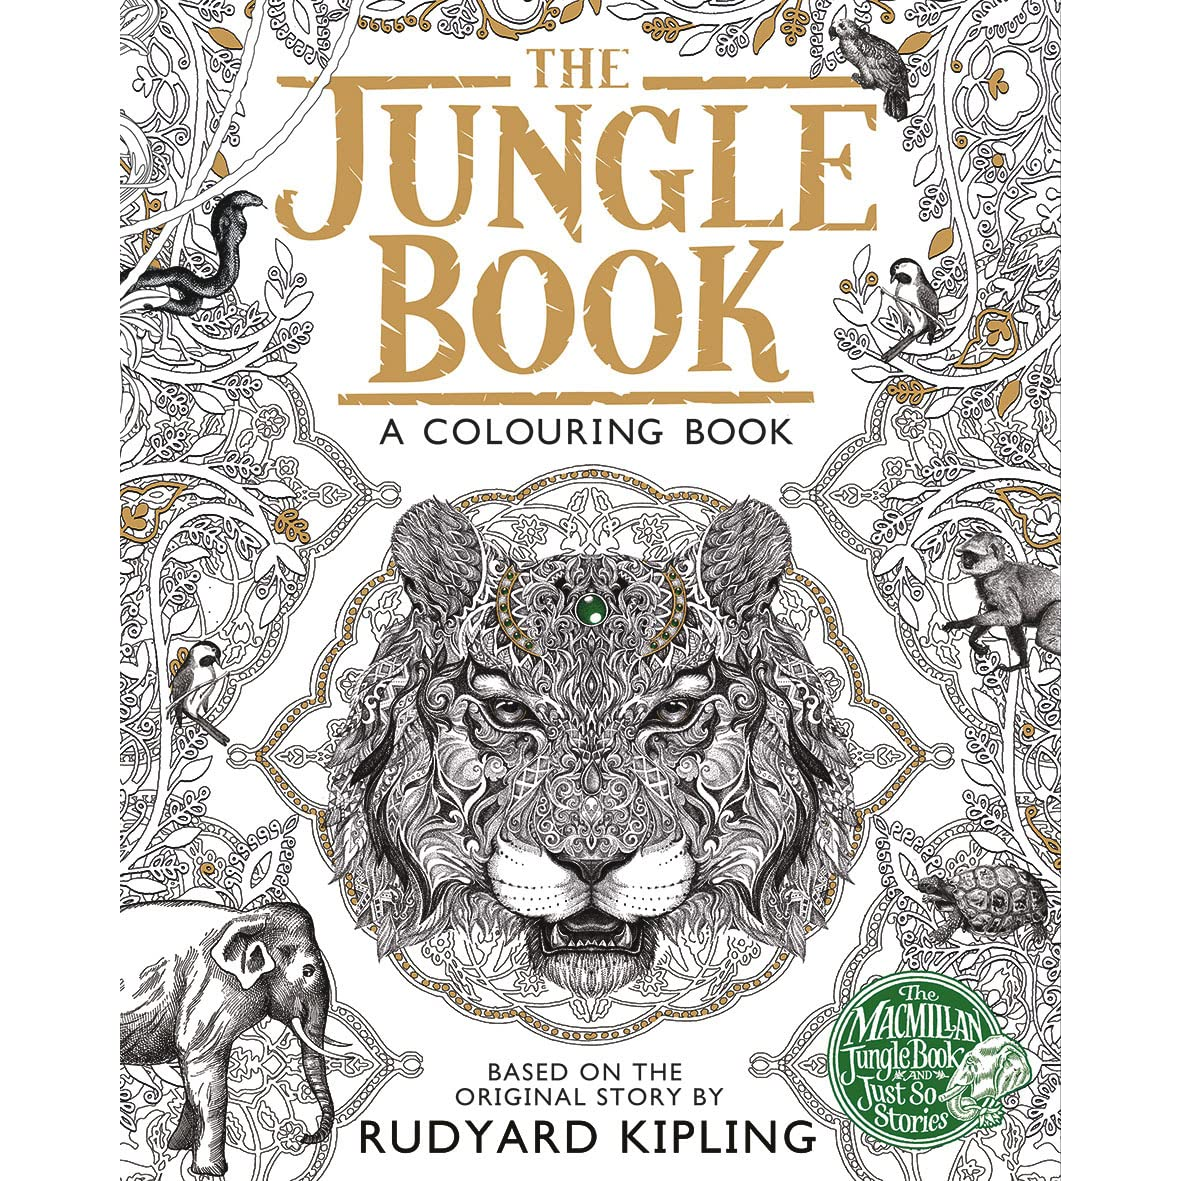 Jungle book colouring in pictures - The Macmillan Jungle Book Colouring Book By Rudyard Kipling Reviews Discussion Bookclubs Lists